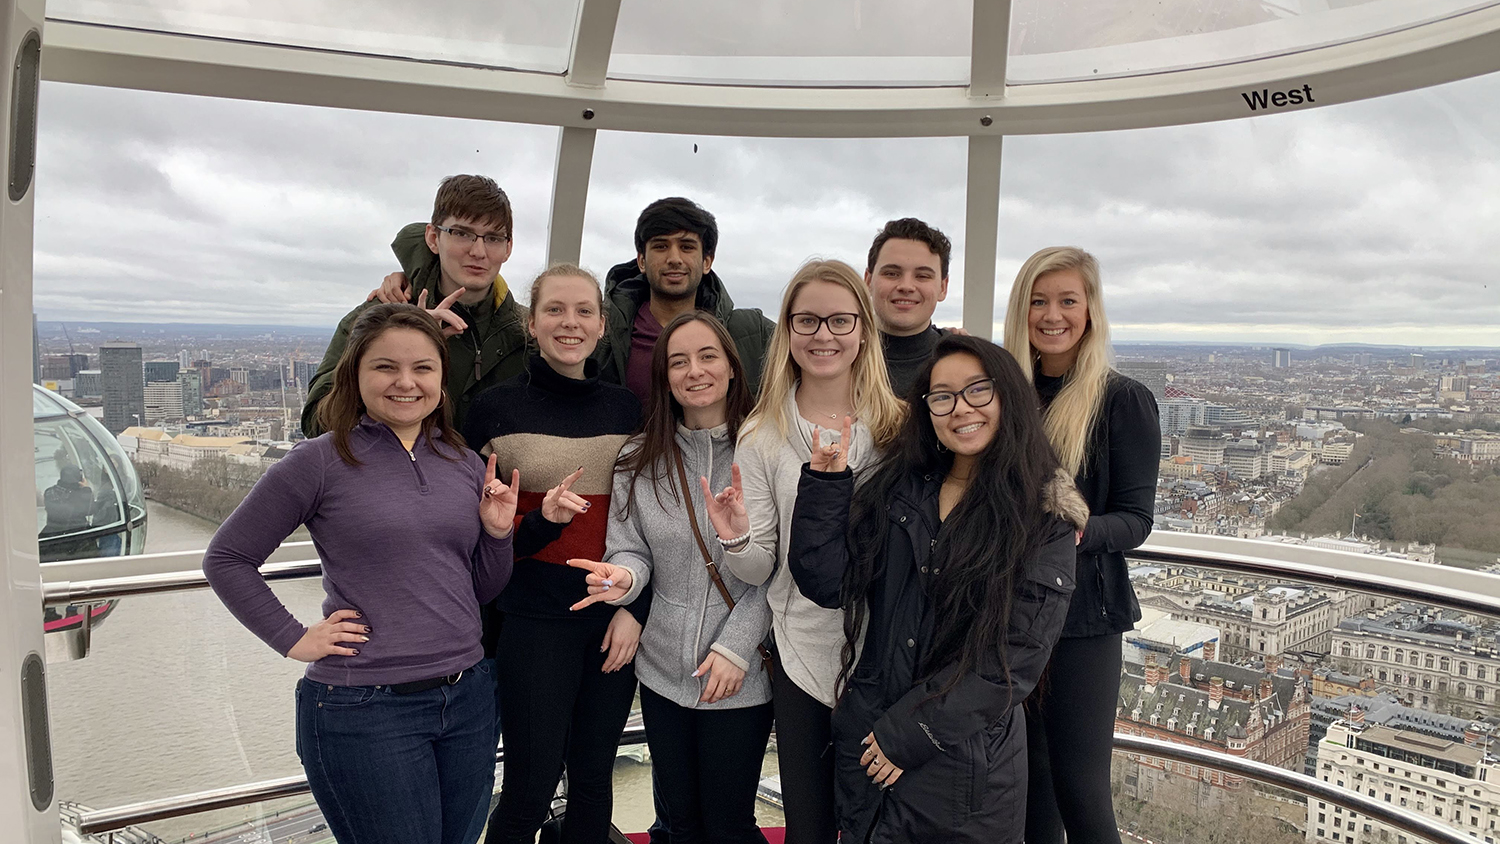 Students pose high above the city of London in a glass observation pod.